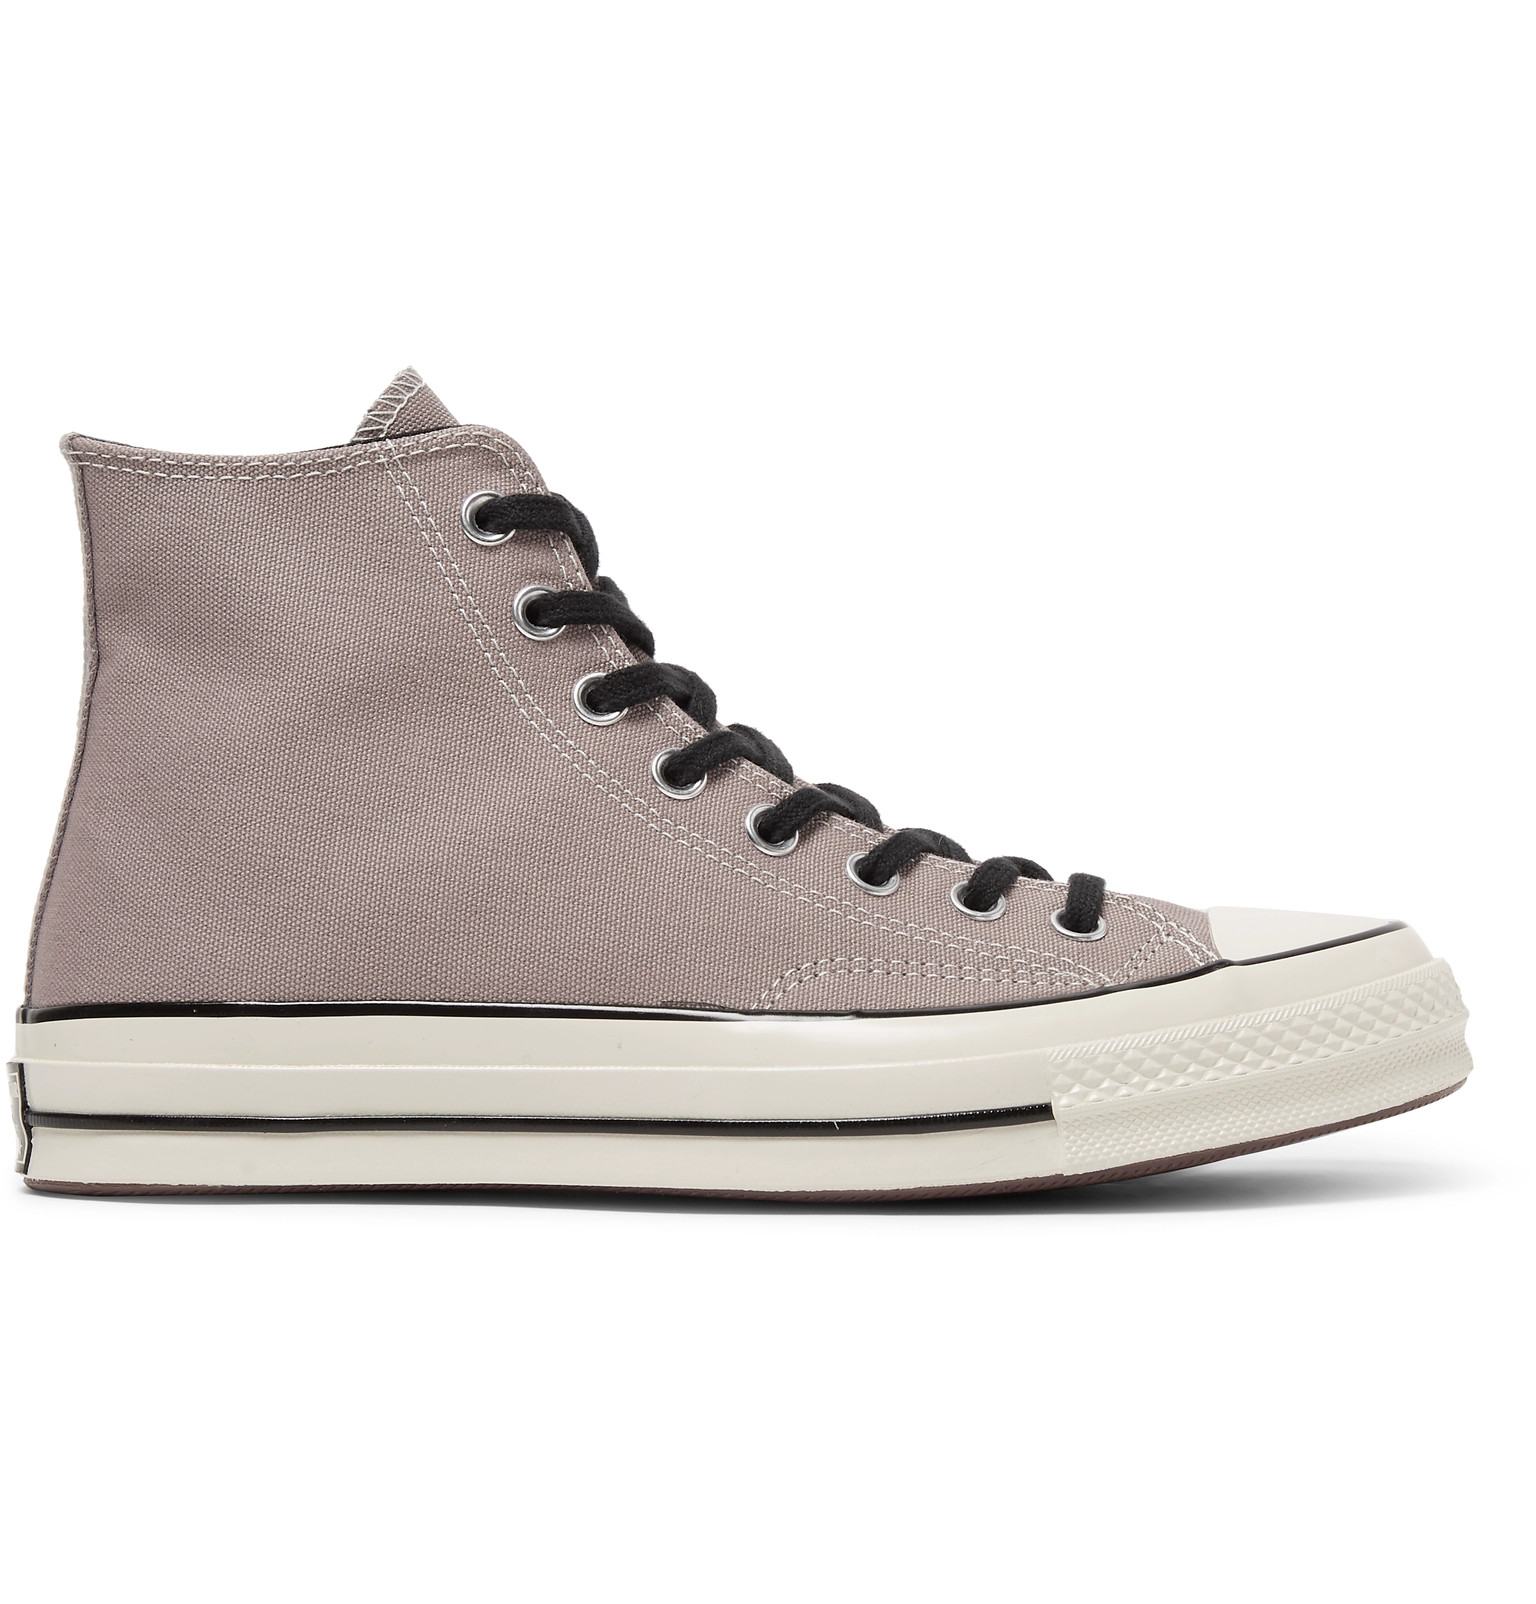 7fea2b99065c Converse - 1970s Chuck Taylor All Star Canvas High-Top Sneakers